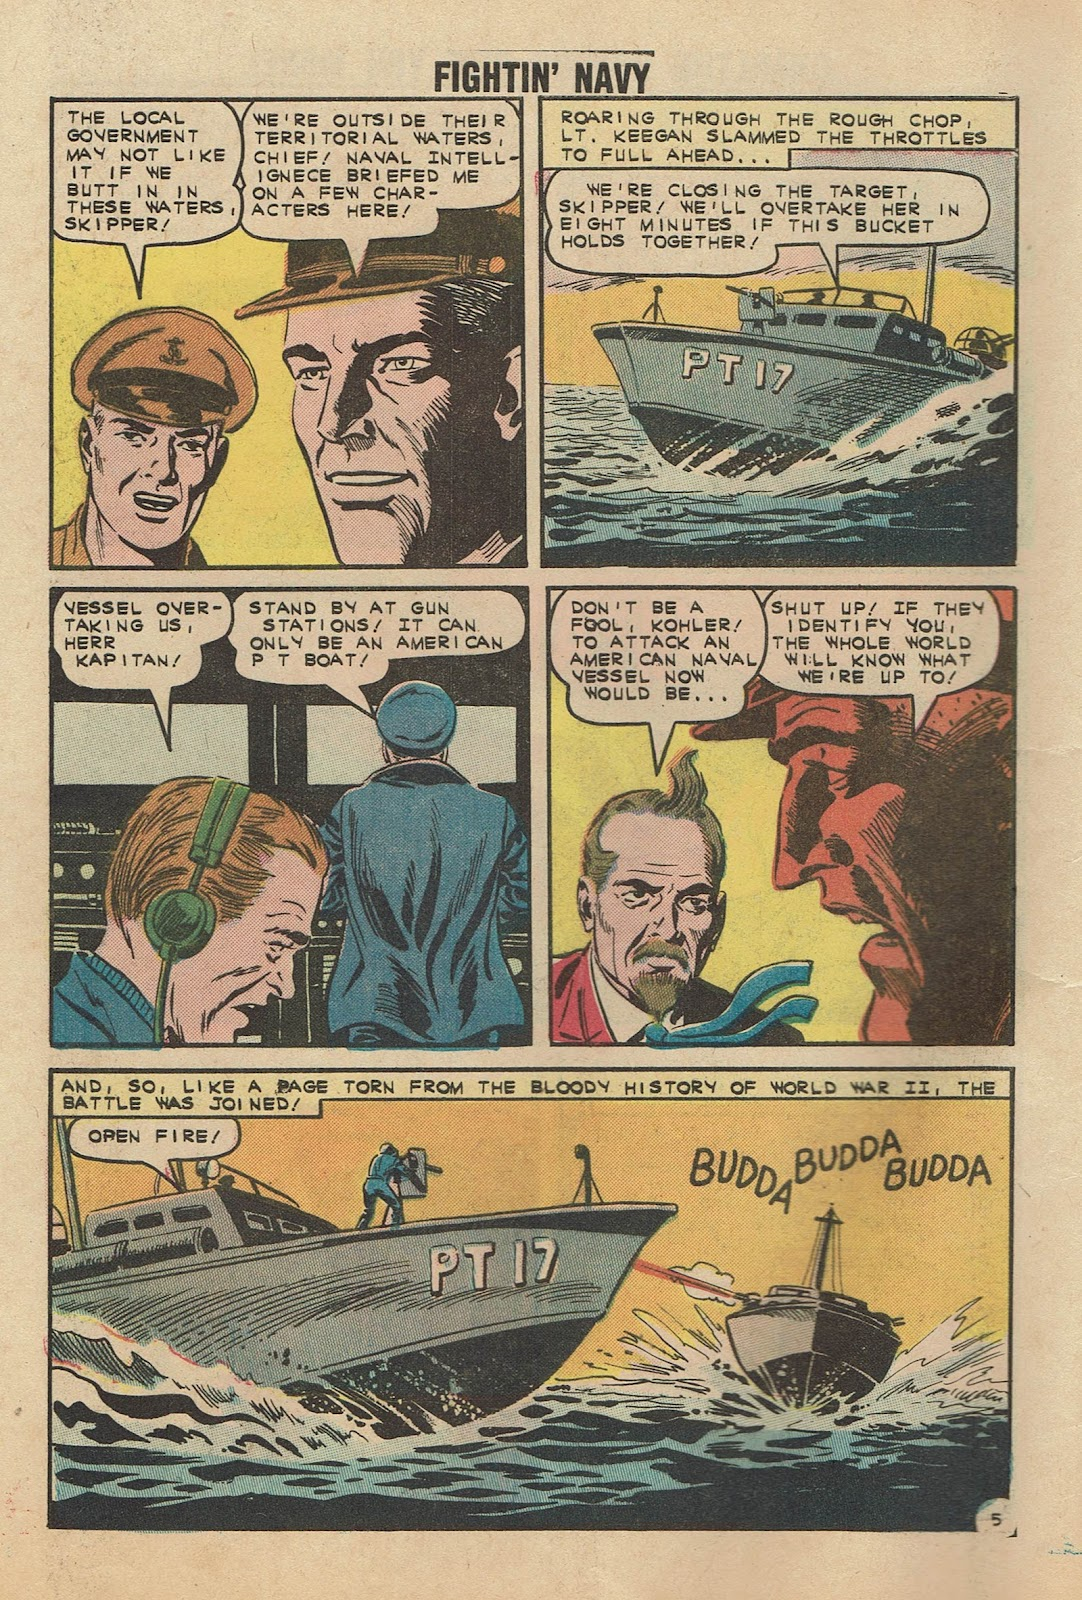 Read online Fightin' Navy comic -  Issue #104 - 8